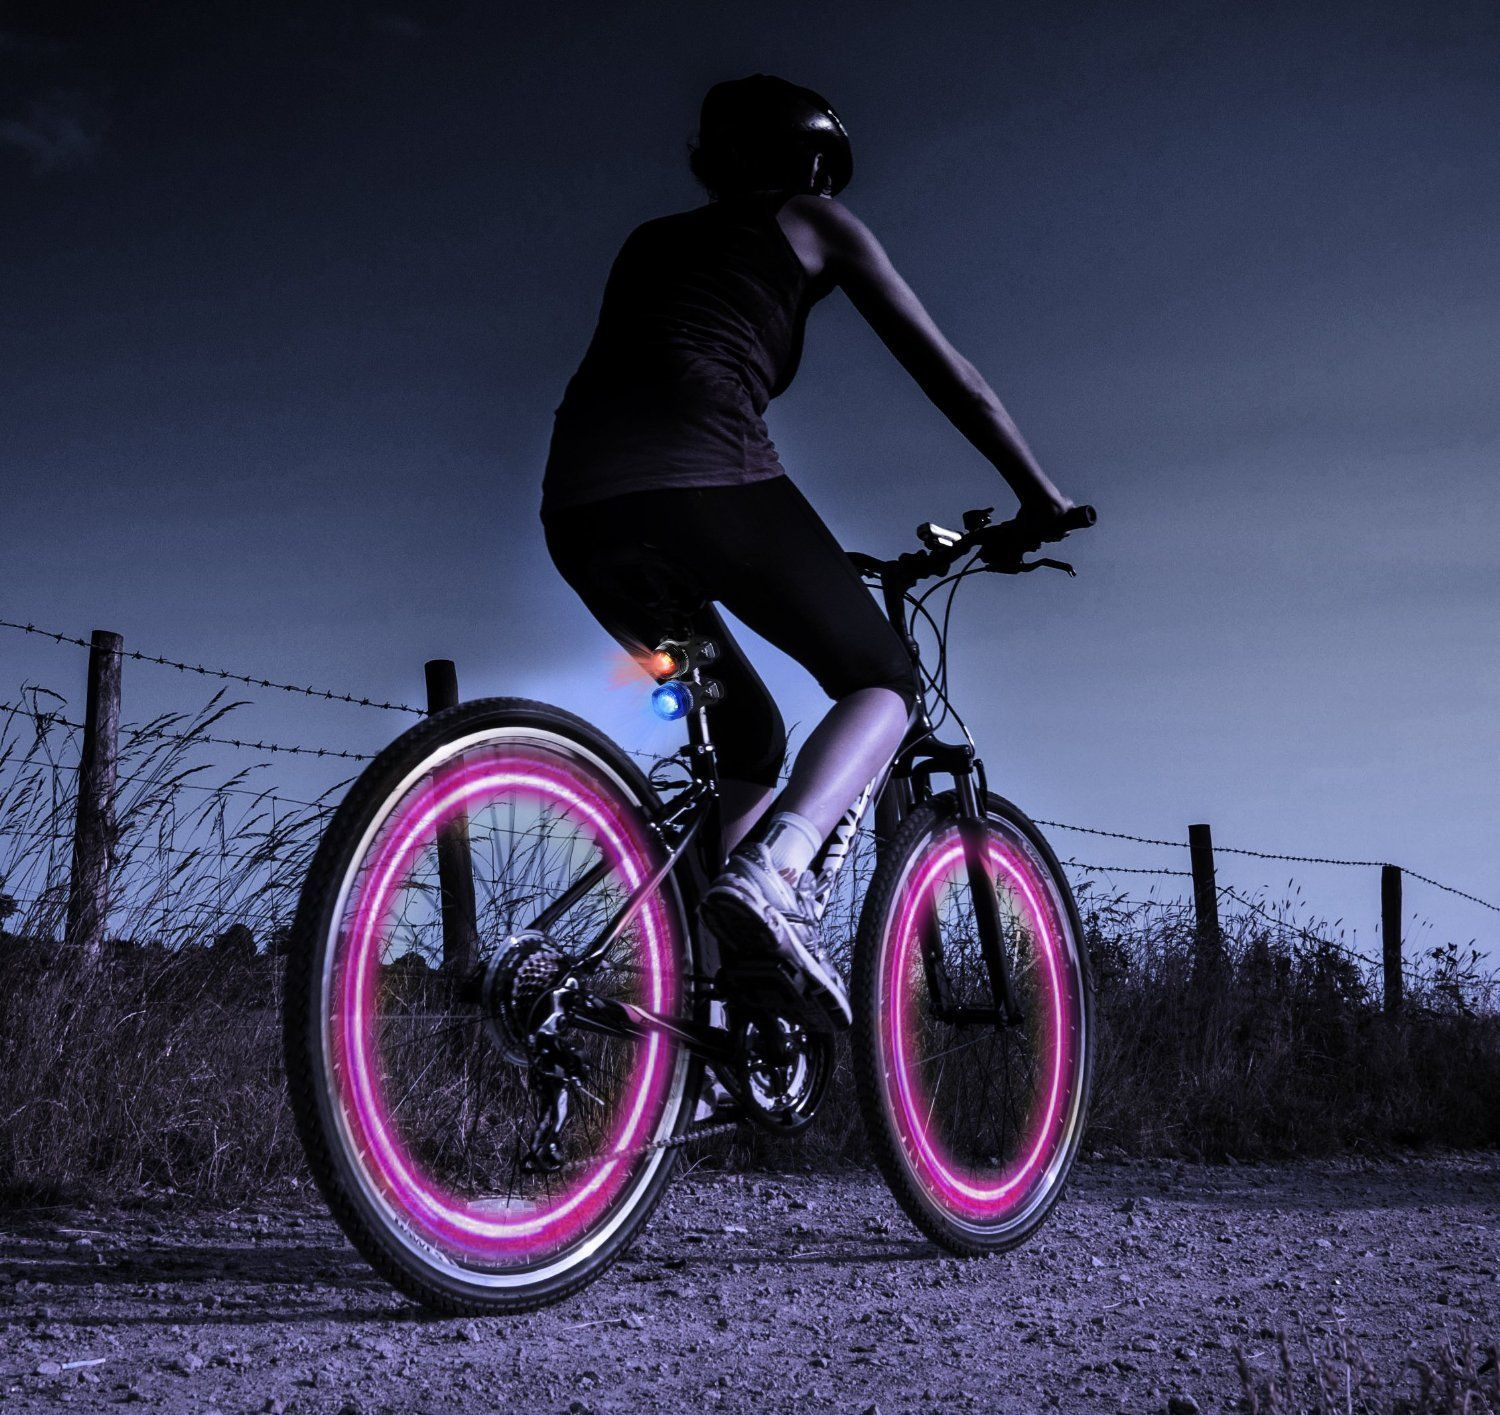 vivid lighting camden products xiii rechargeable led gear lights bike